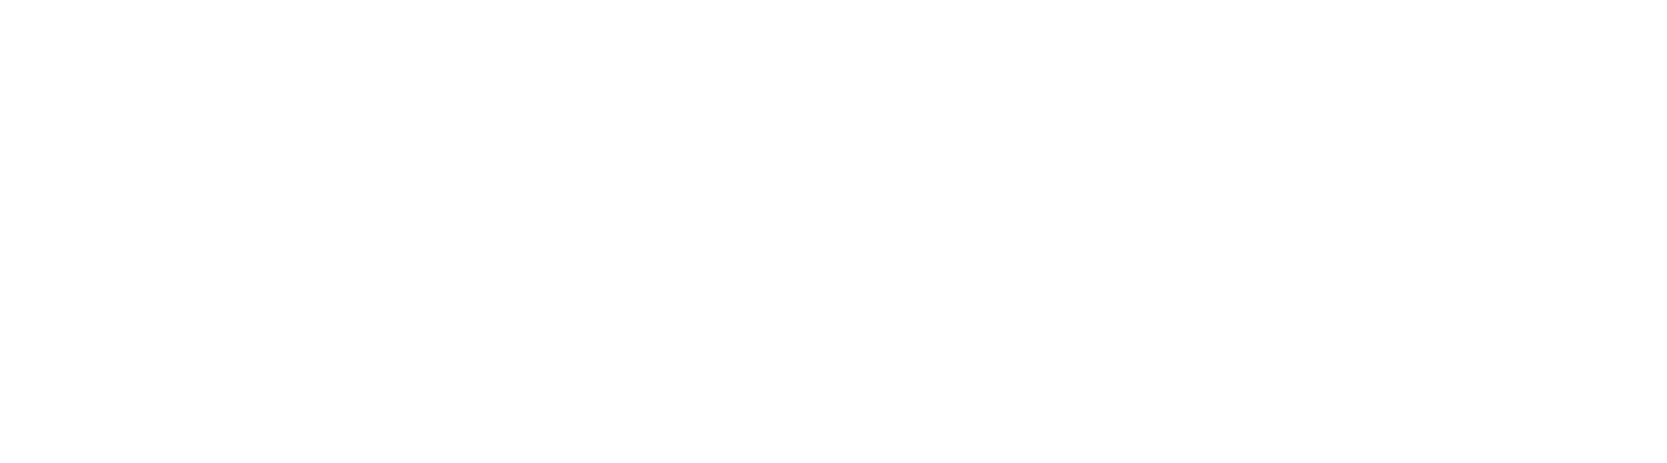 Chrystopher James